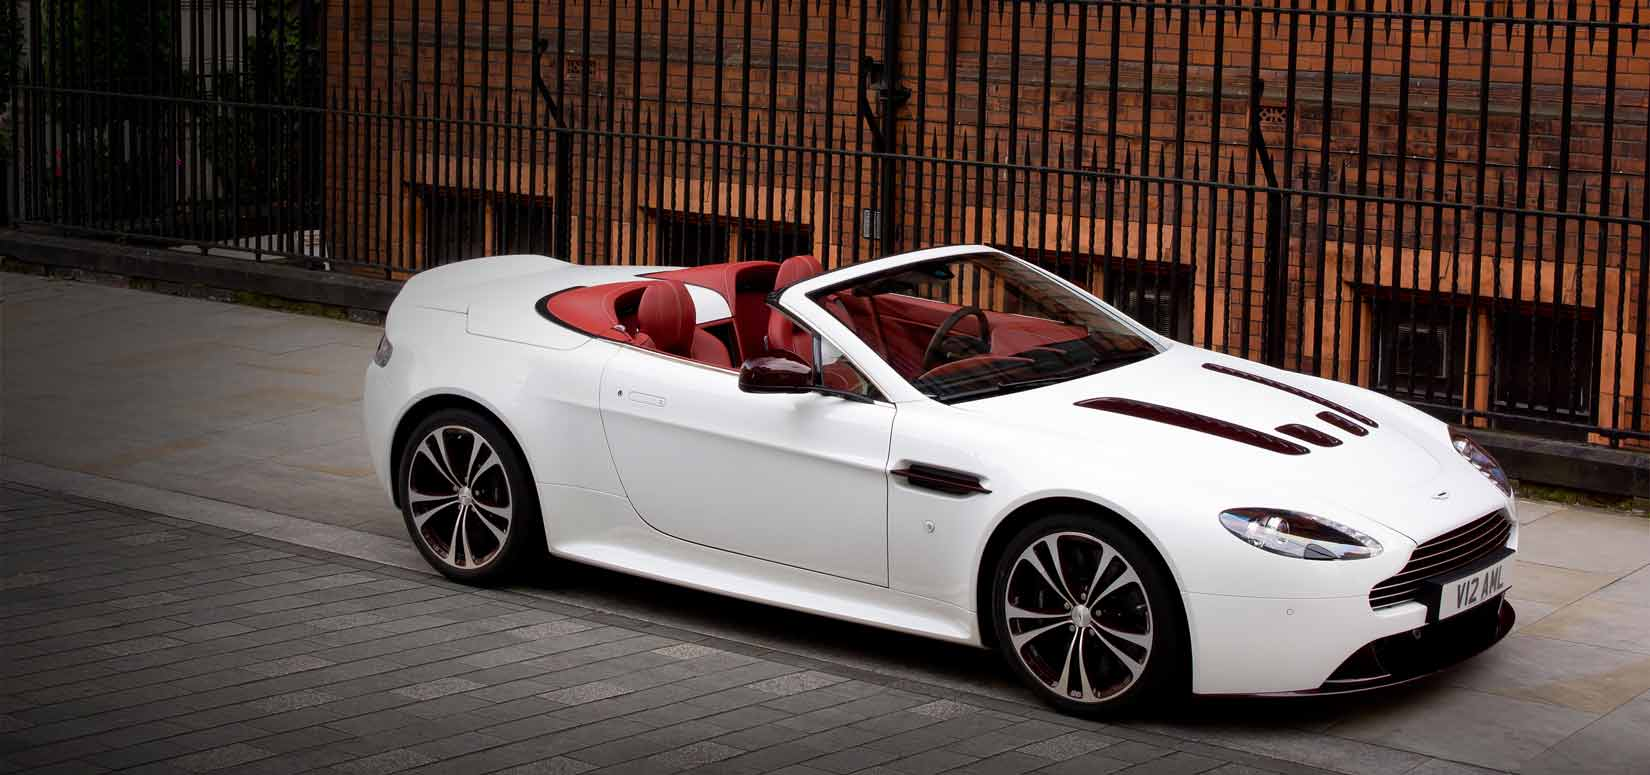 Auto and Cycle ASTON MARTIN V12 VANTAGE ROADSTER about $230k...yikes!